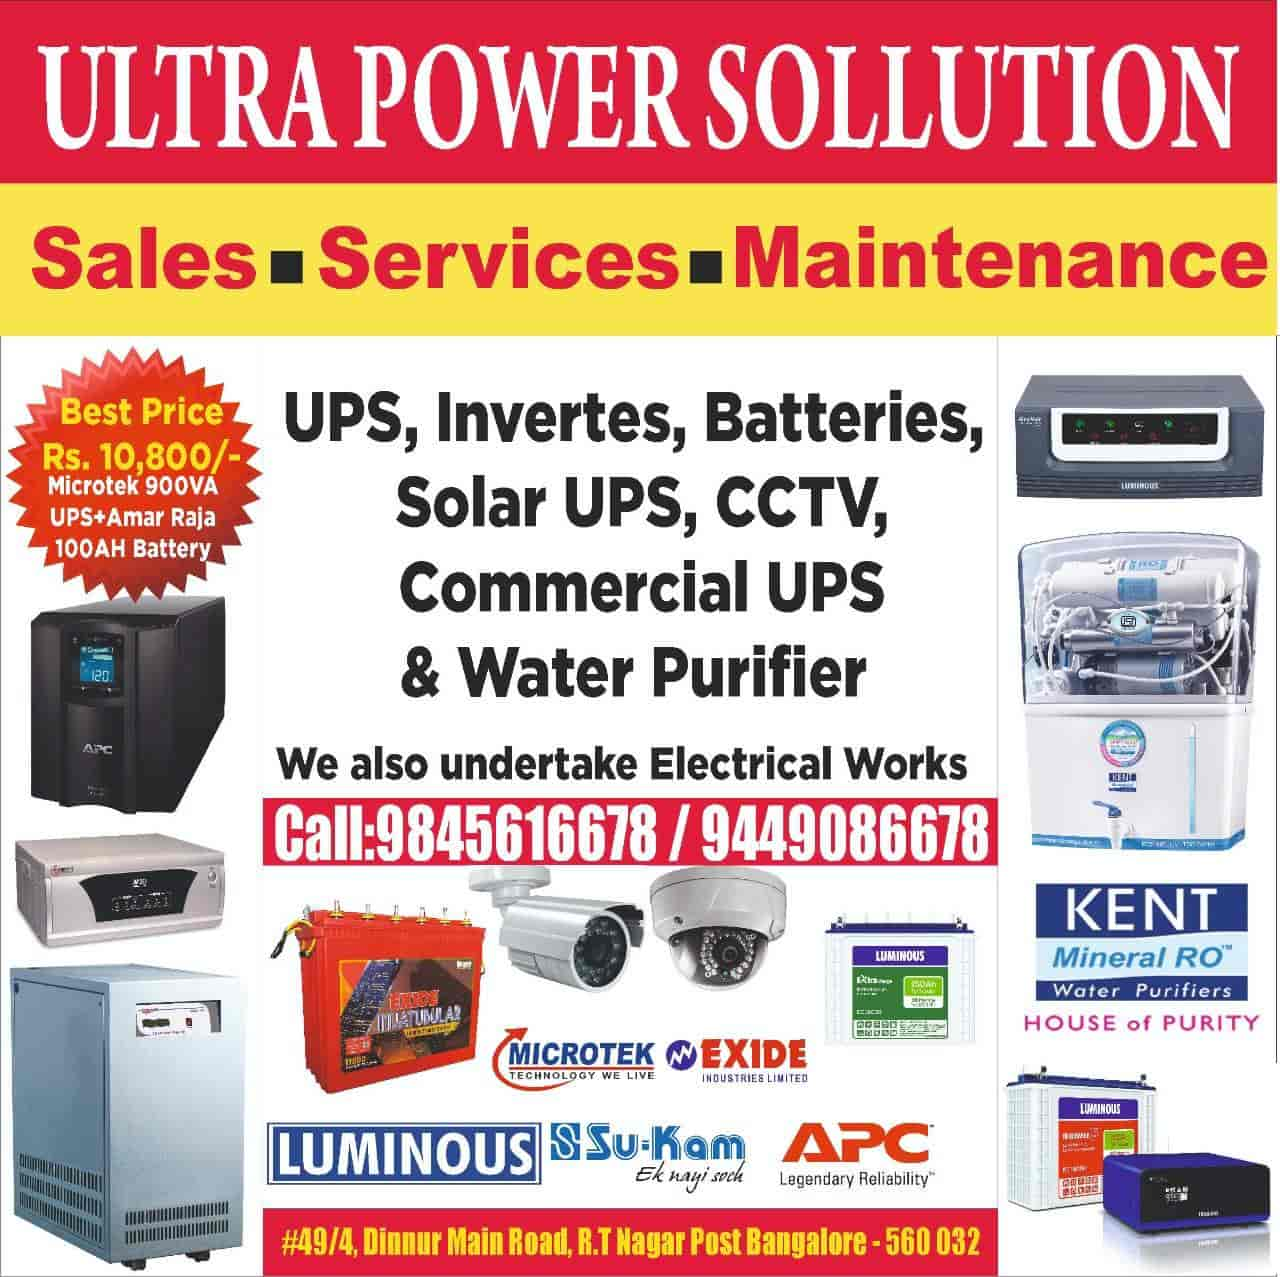 Ultra Power Solutions, Rt Nagar - UPS Battery Dealers in Bangalore